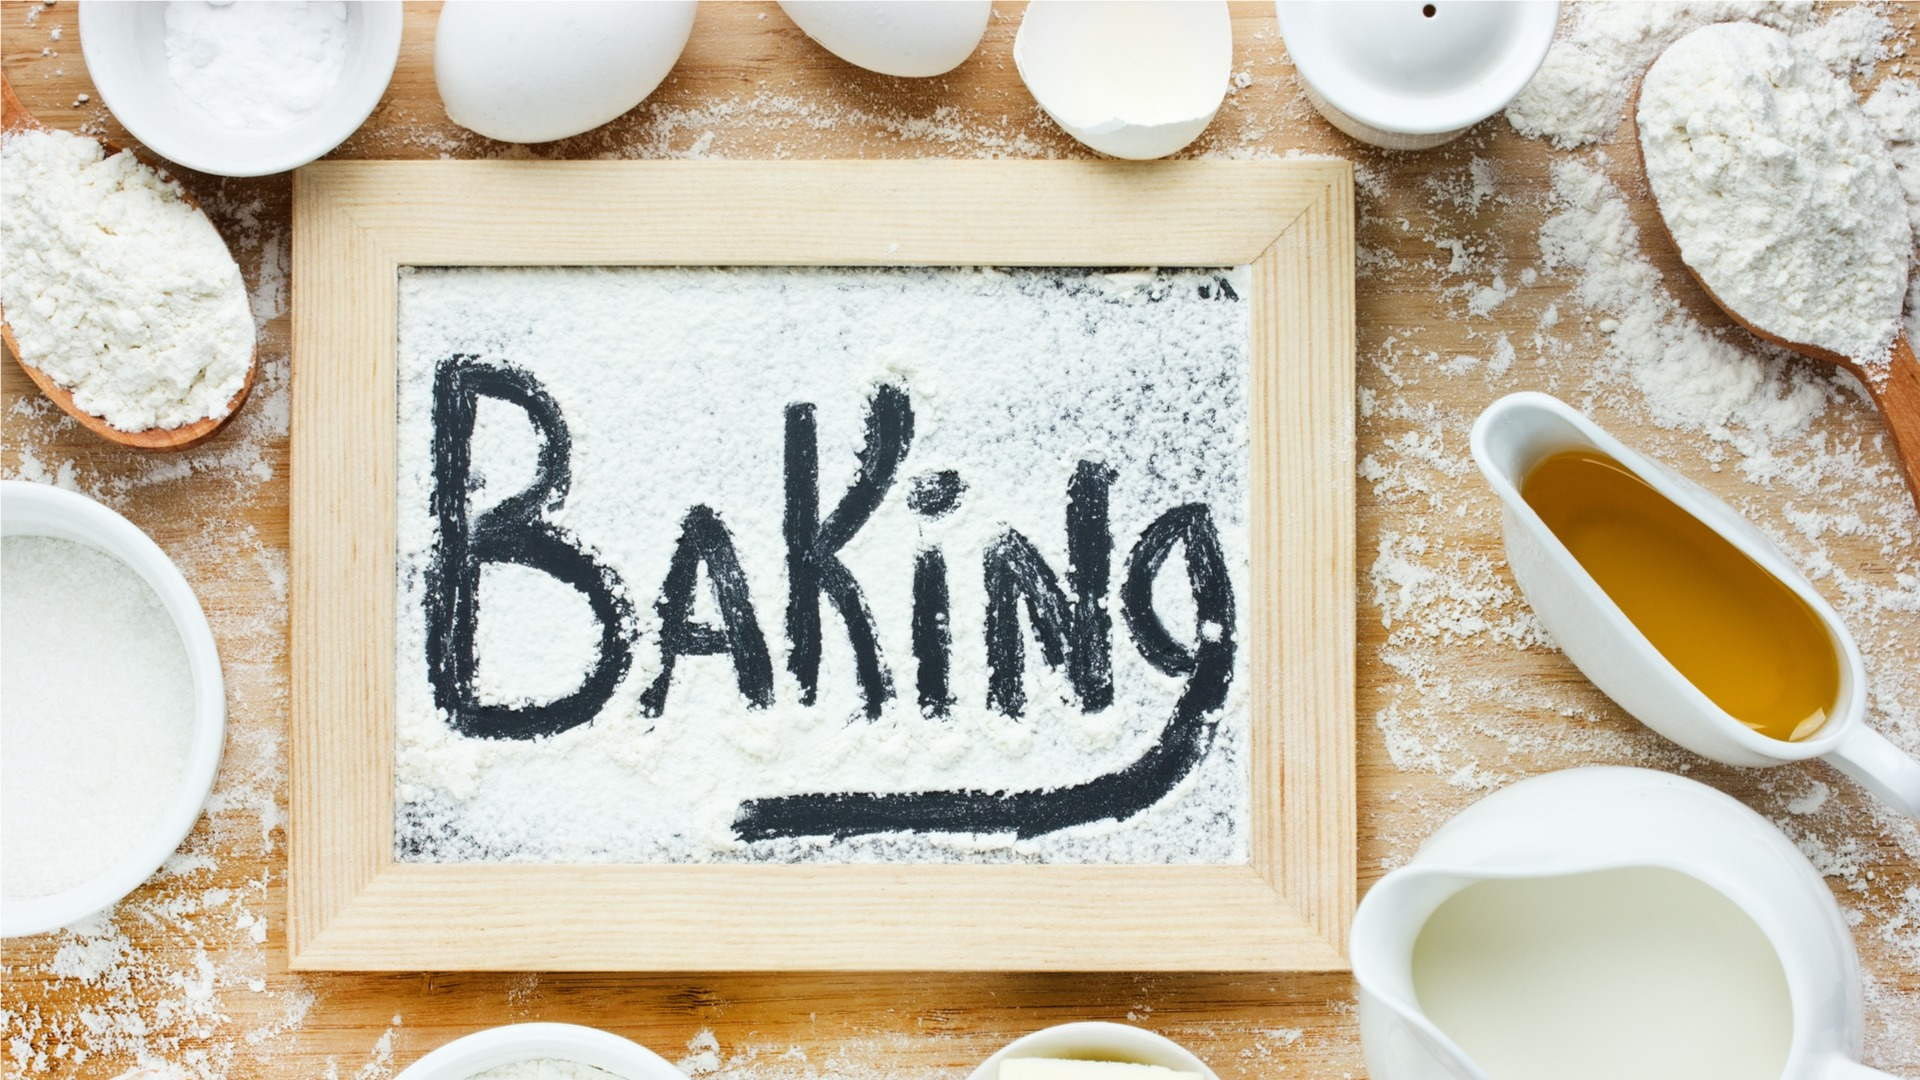 Baking written using flour